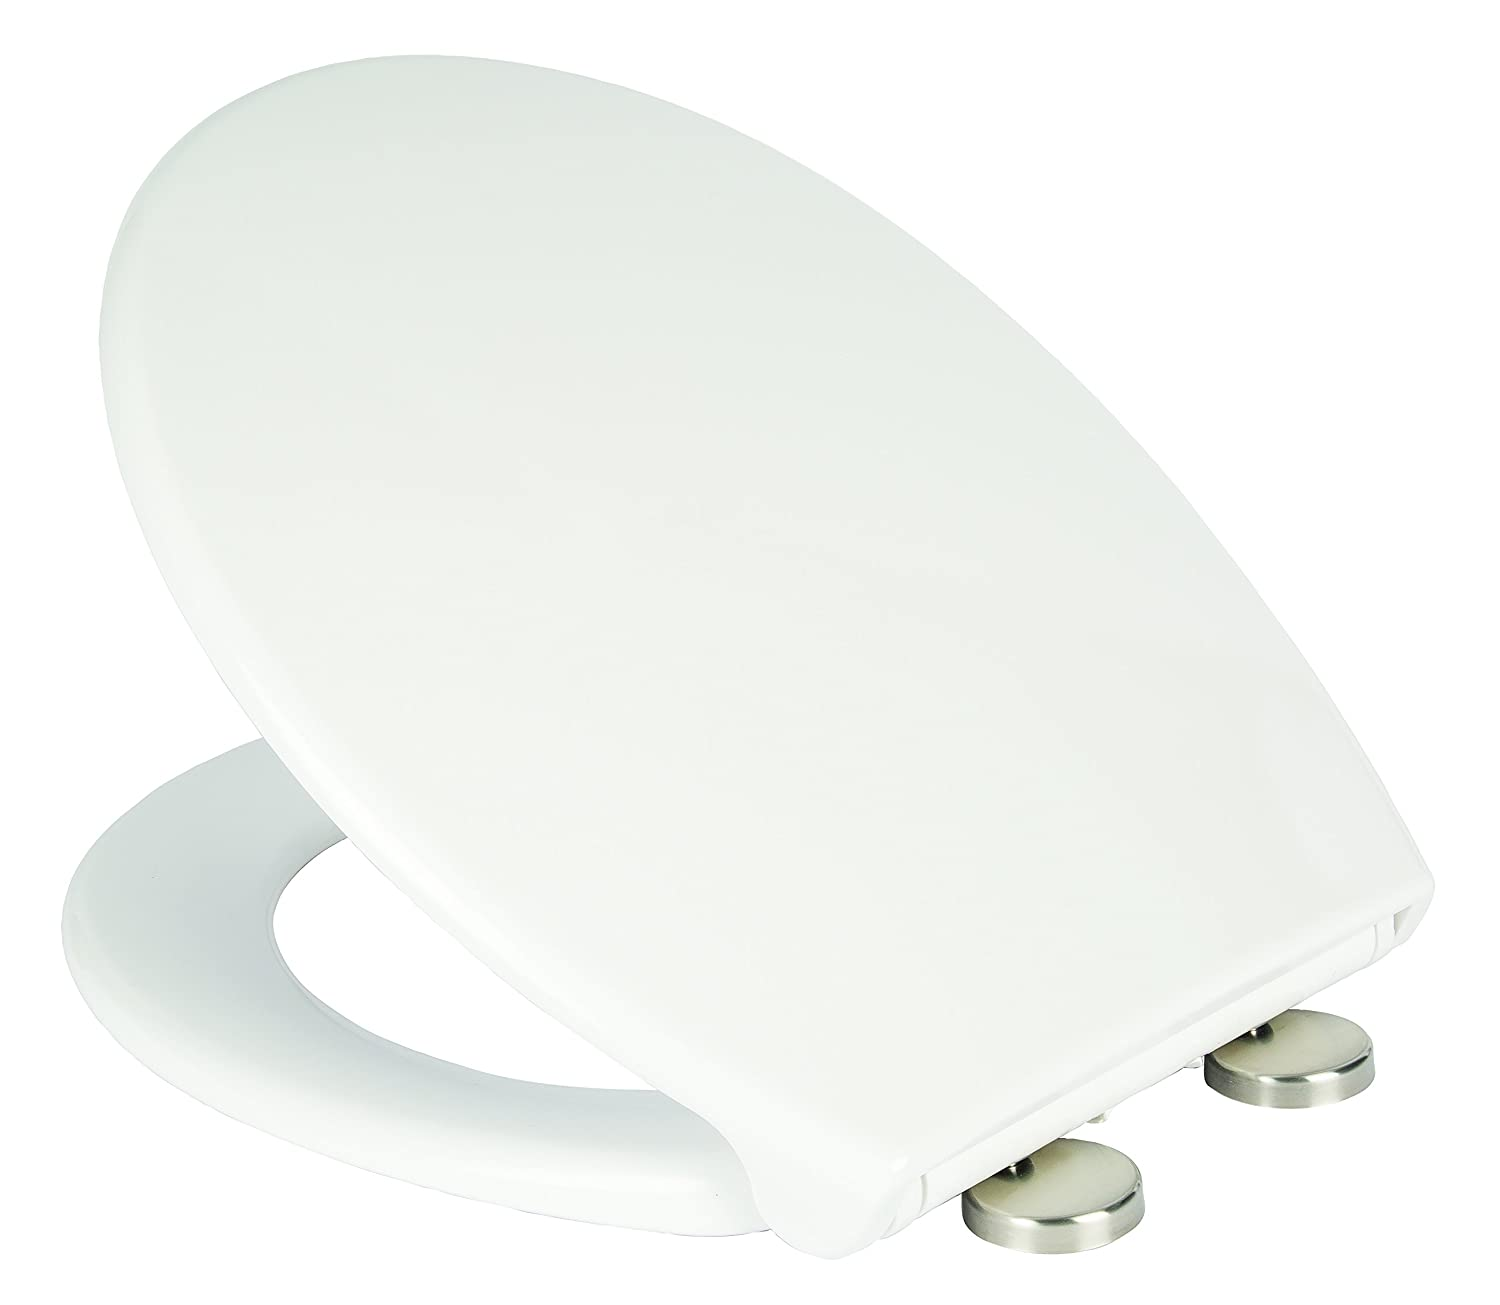 Croydex Luminoso Self Lighting Urea Toilet Seat with Quick Release and Stainless Steel Top Fix Soft Close Hinges, White Croydex Ltd WL533122E